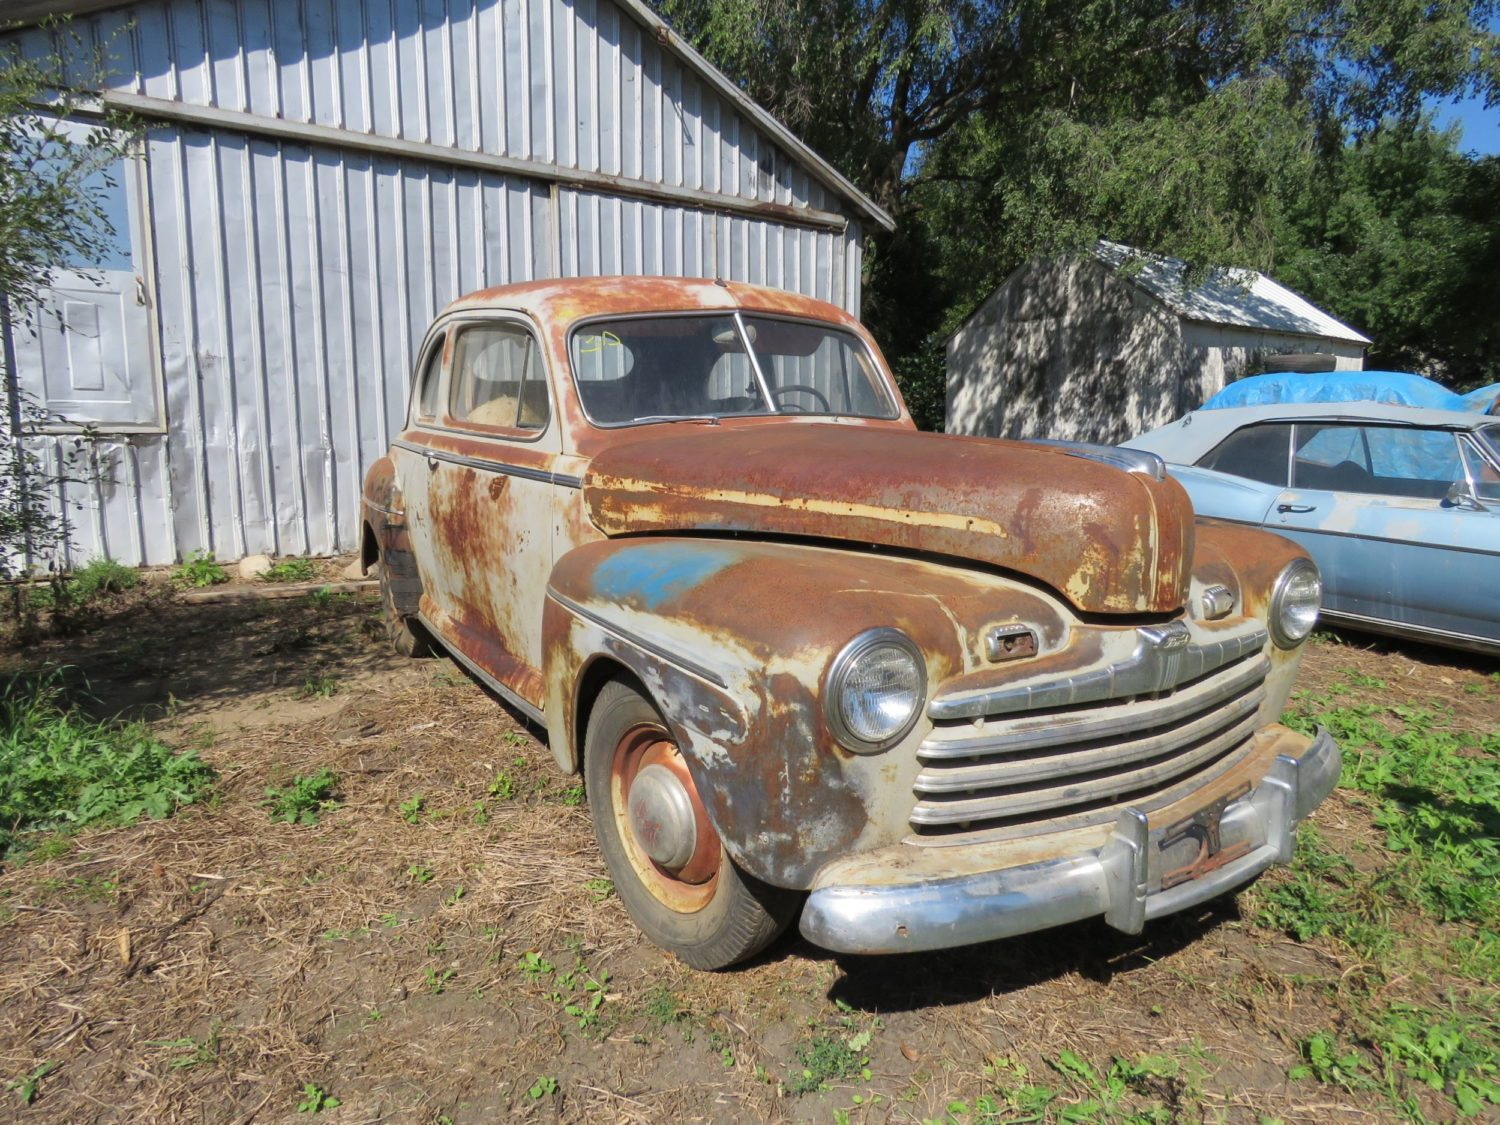 Collector Cars and Parts-Doug Wilson Collection - image 3